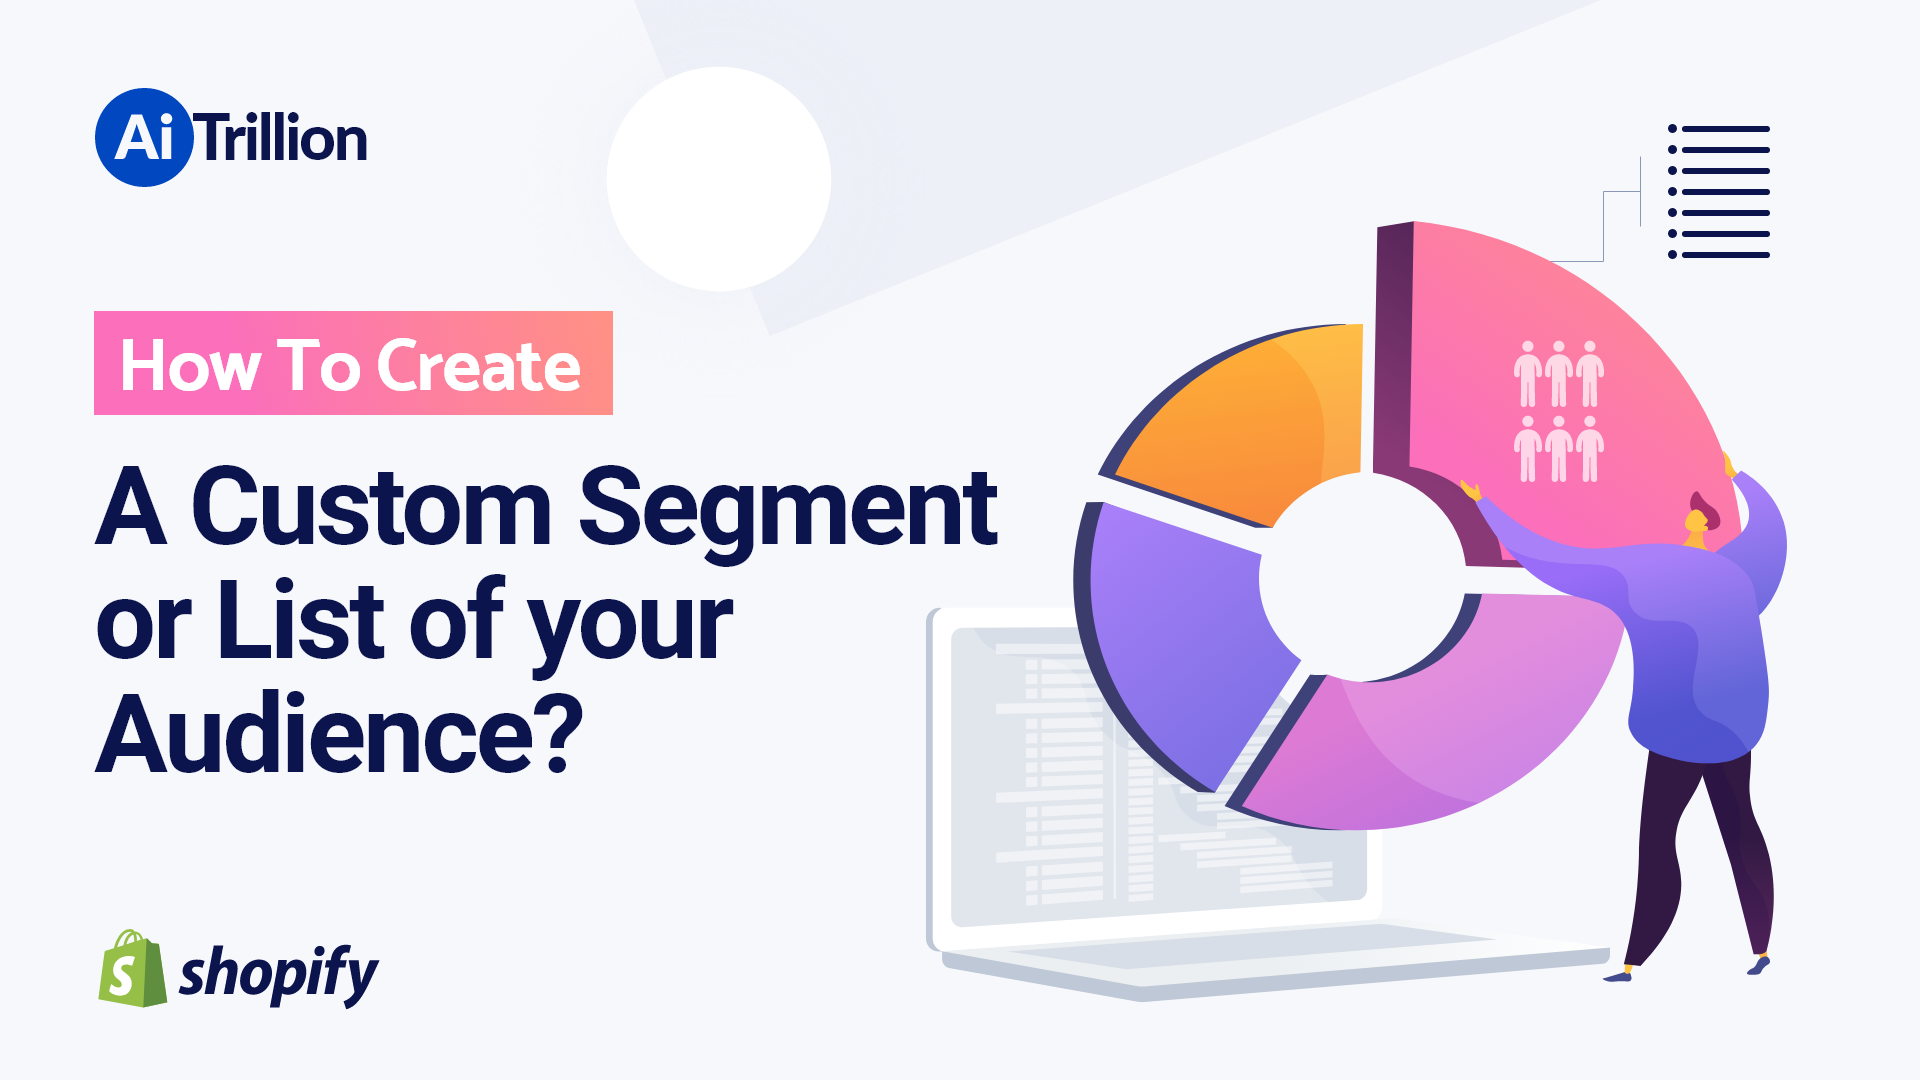 How To Create A Custom Segment or List of your Audience